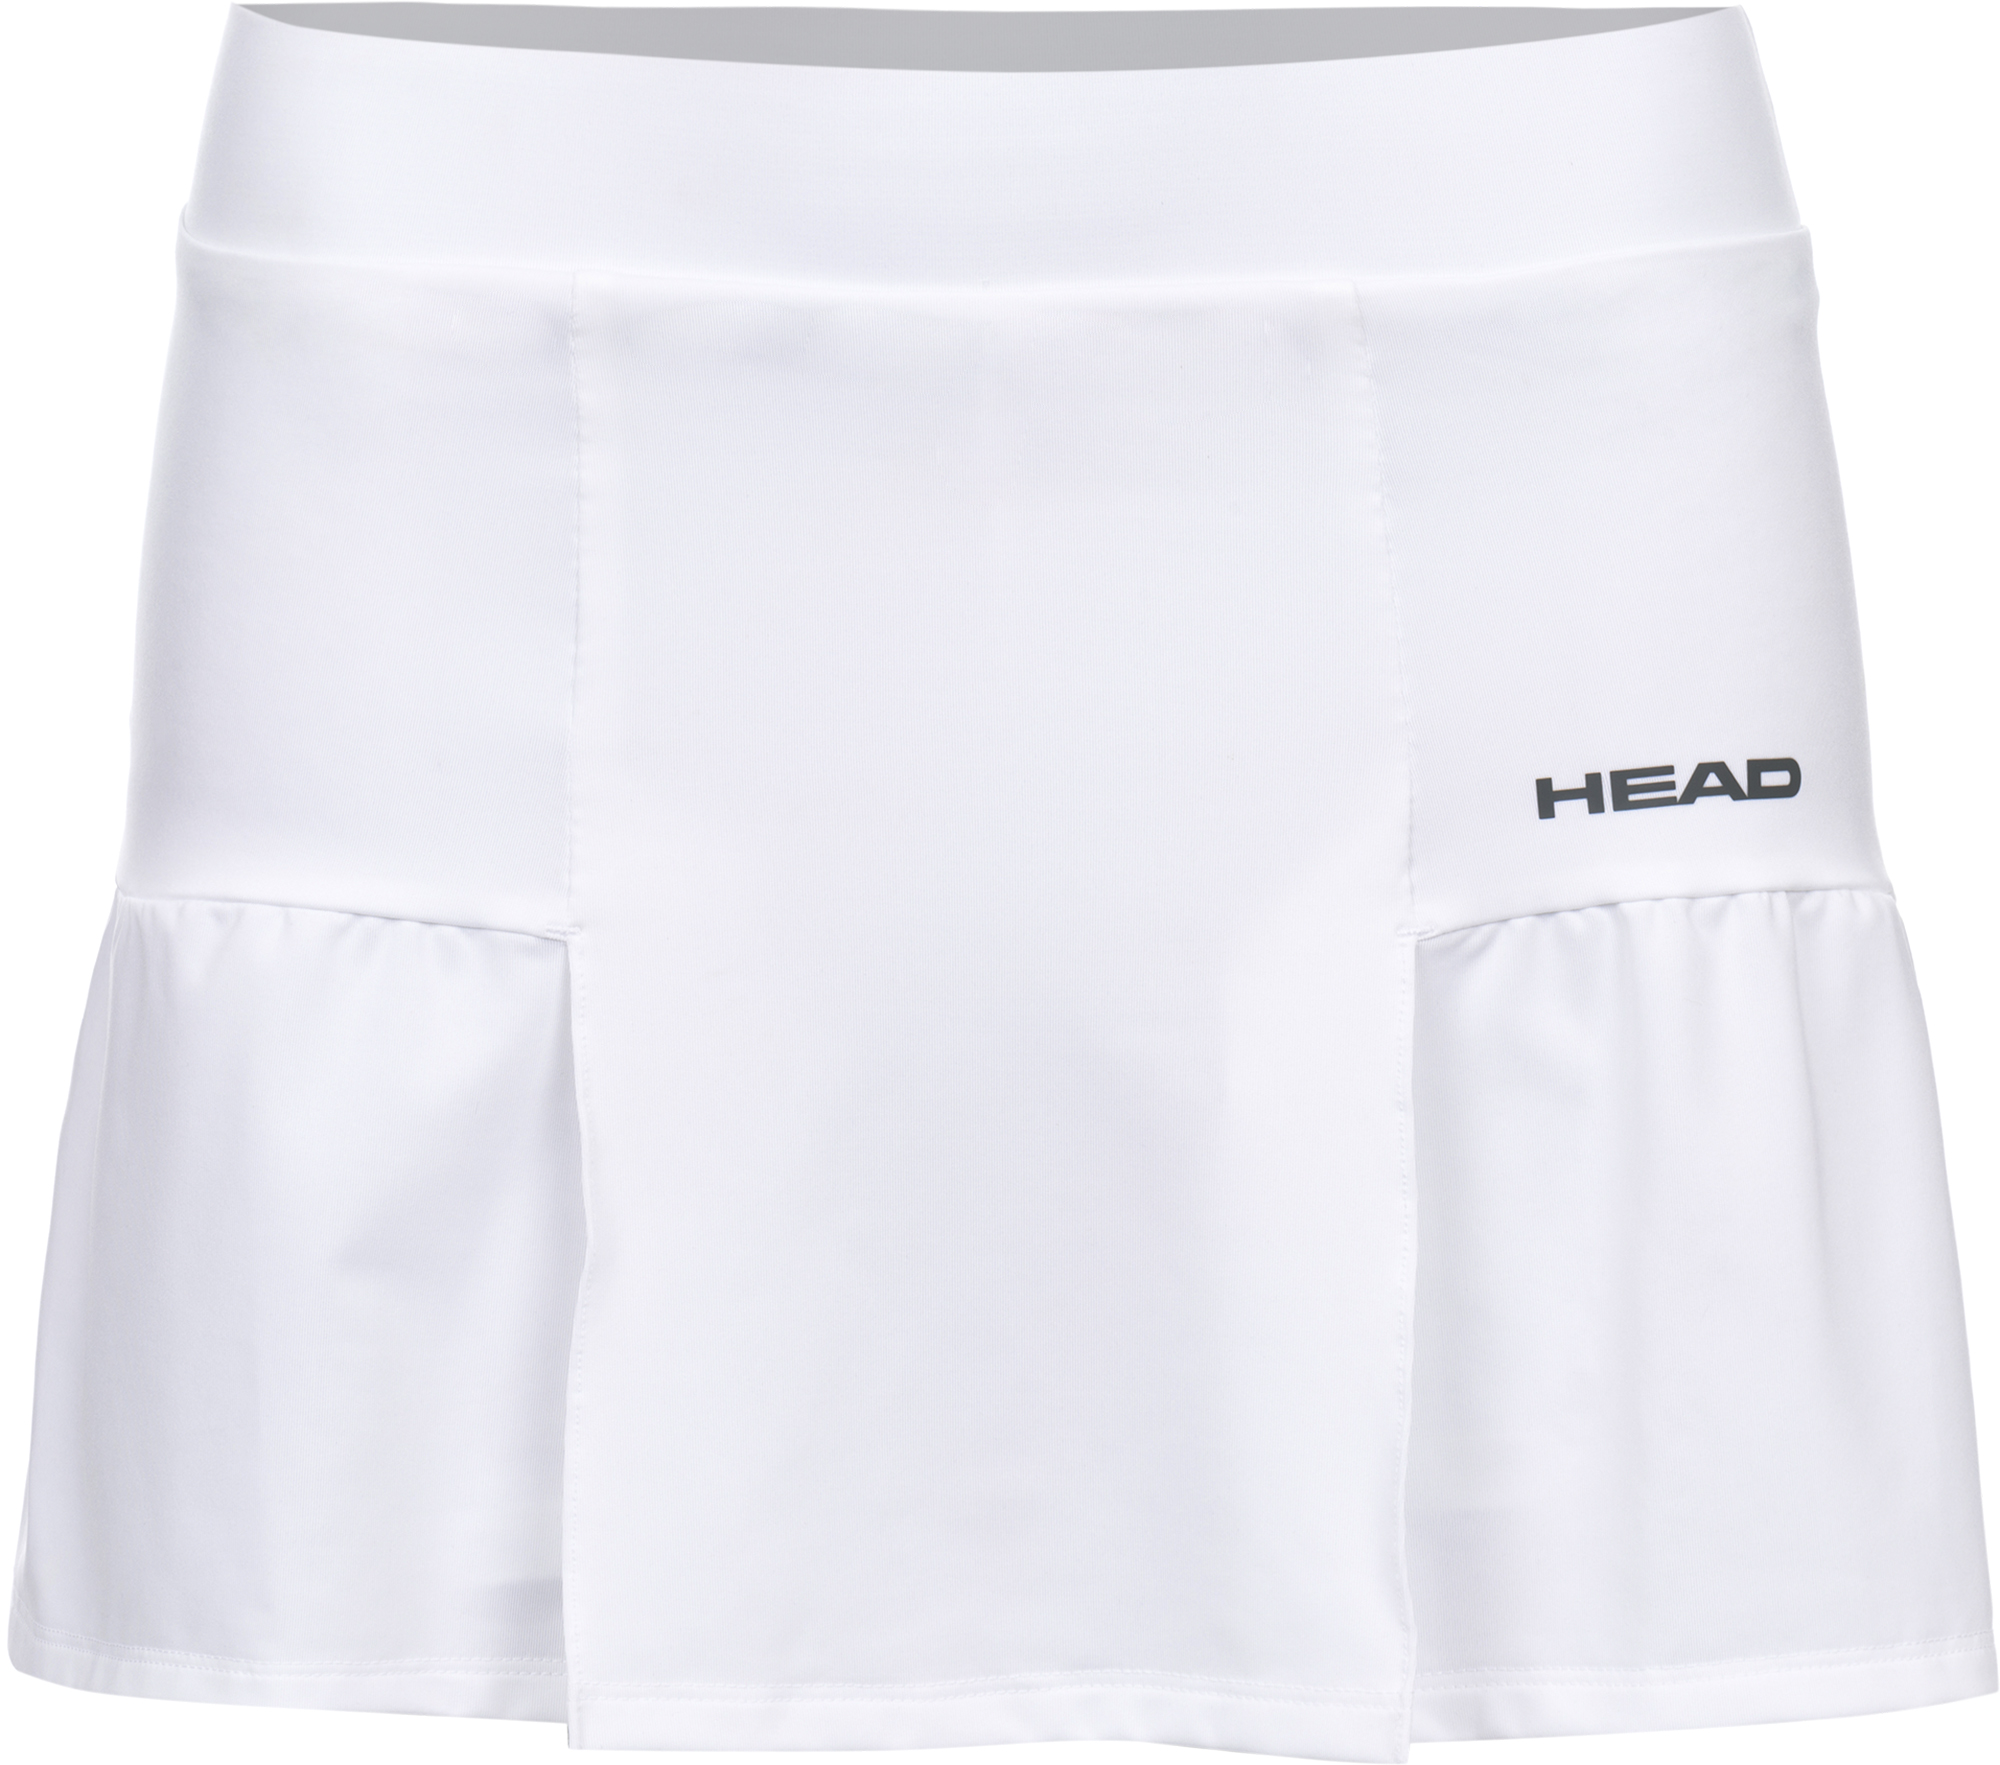 купить Head Юбка женская Head Club Basic Skort, размер 46-48